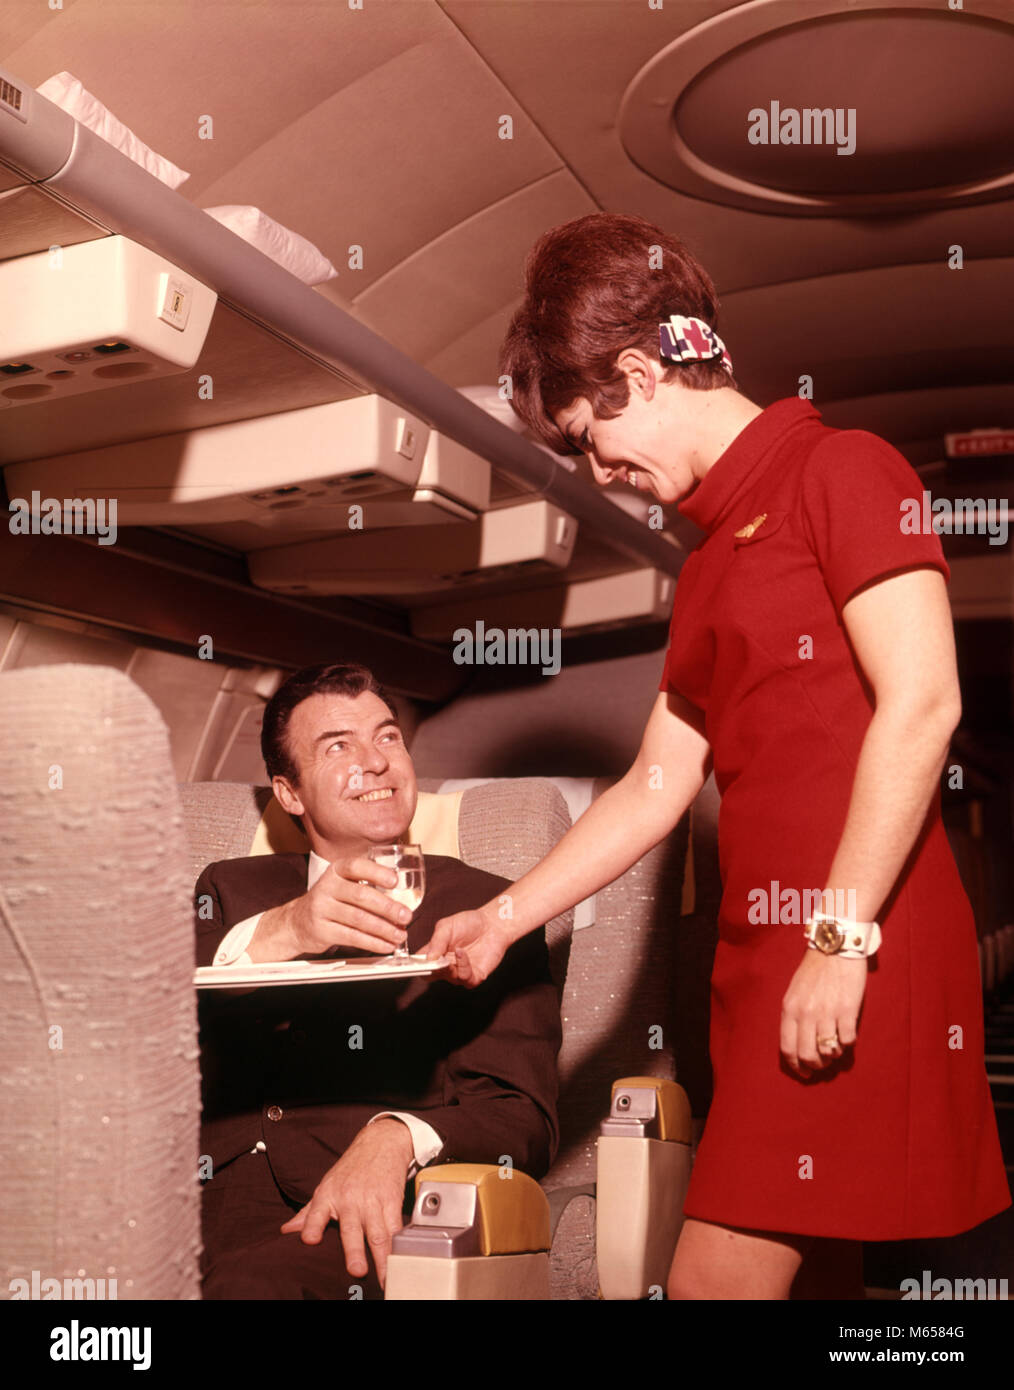 1960s 1970s AIRPLANE PLANE STEWARDESS SERVING BUSINESS MAN DRINK WINE WOMAN COMMERCIAL AIR TRAVEL - ka1667 HAR001 - Stock Image